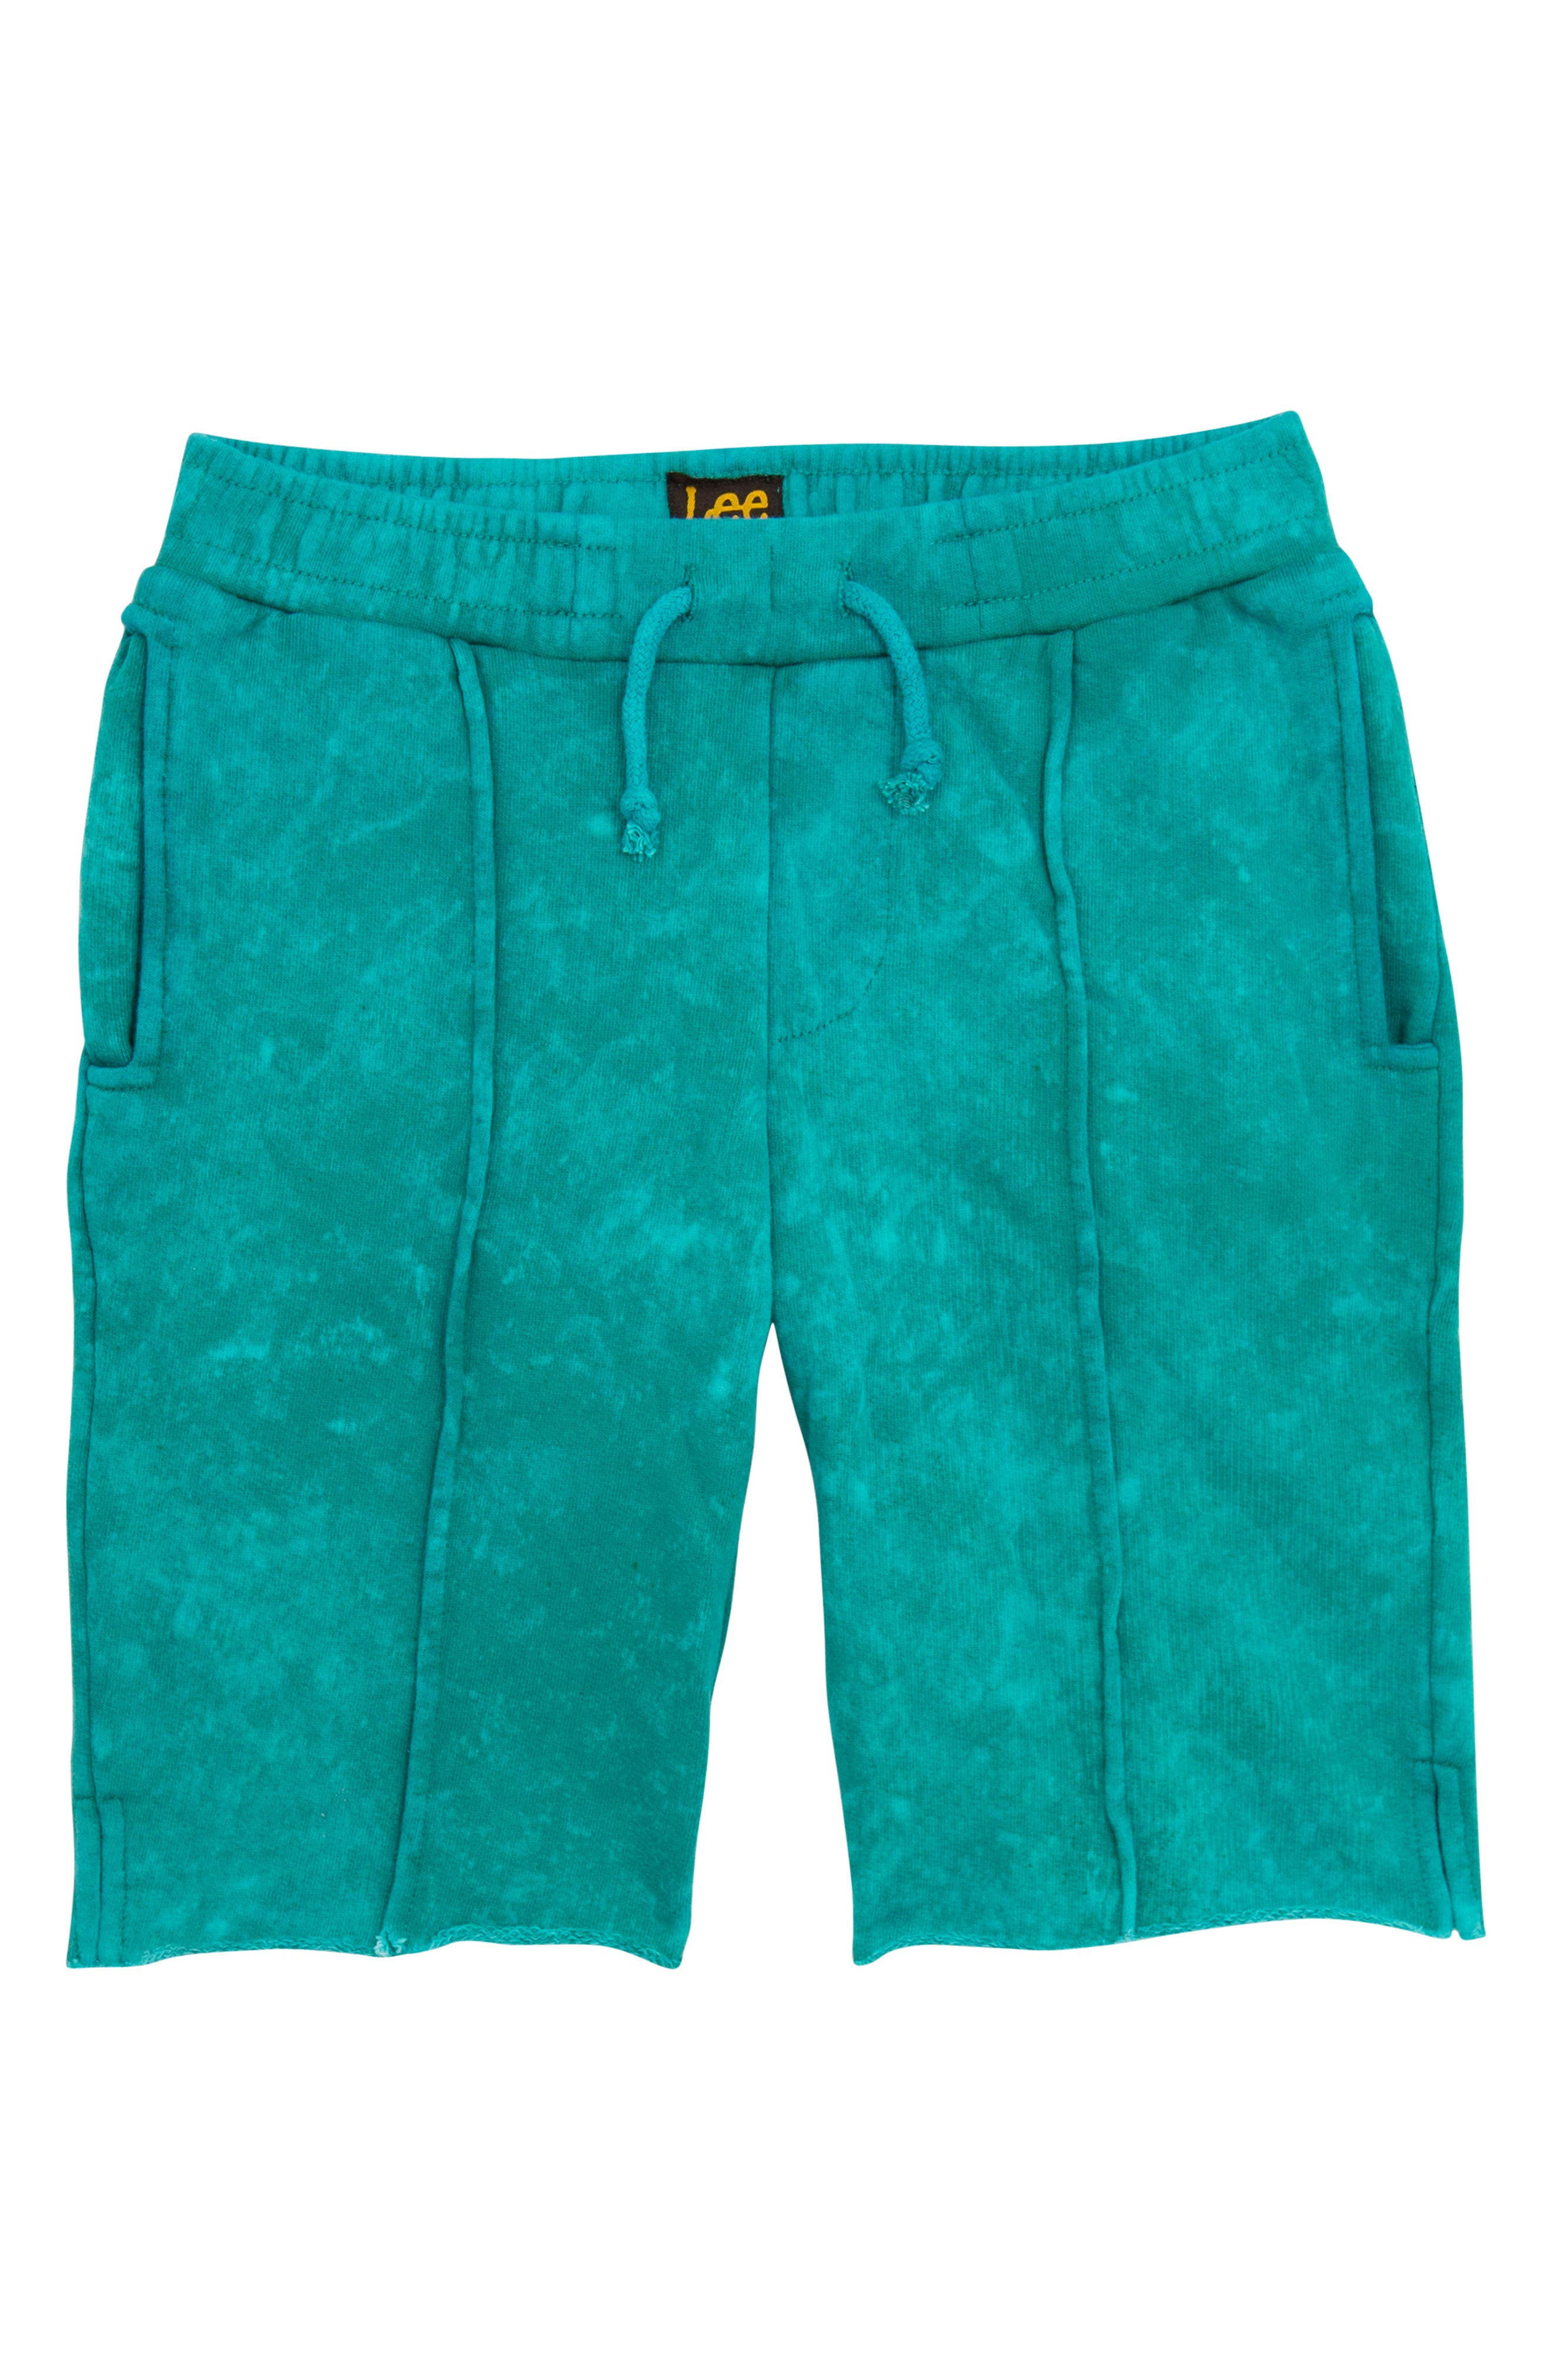 Acid Wash Pull-On Denim Shorts,                             Main thumbnail 1, color,                             Turquoise